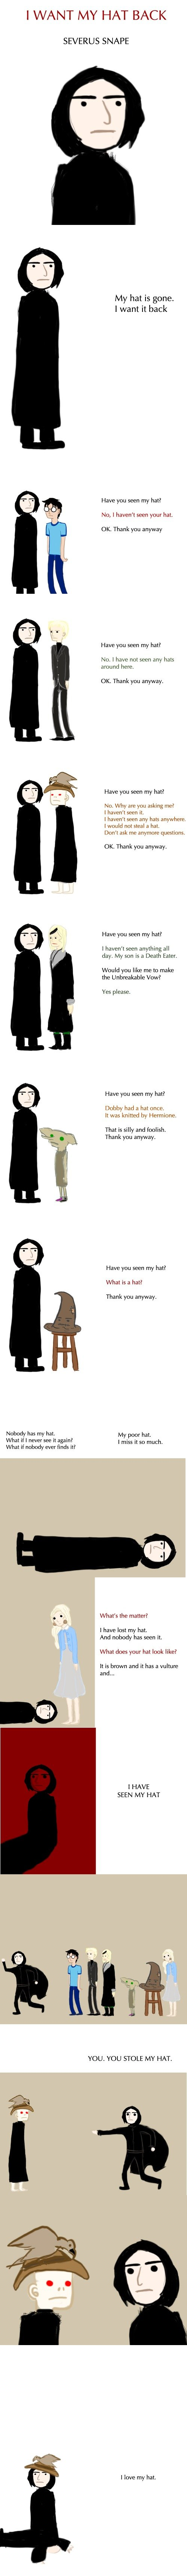 A tragic tale of tragic proportions. . I WANT MY HAT BACK SEVERUS SNAPE My hat is gone. I want it back Have you seen my hat? No, I haven' t seen your hat. on Th